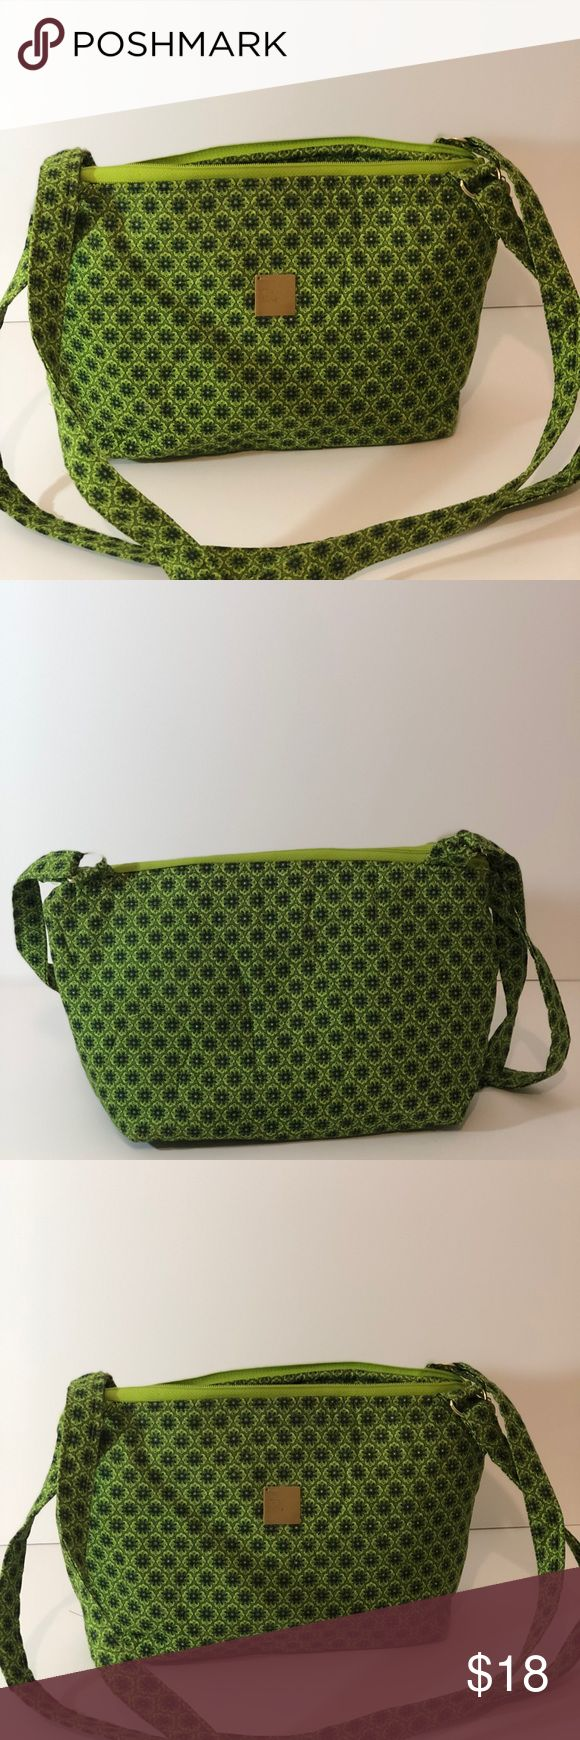 Emerald green shoulder bag Emerald green shoulder bag measures approximately 12x7.5 has inside pockets for extra storage light weight bag can be carried any where handmade Bags Shoulder Bags